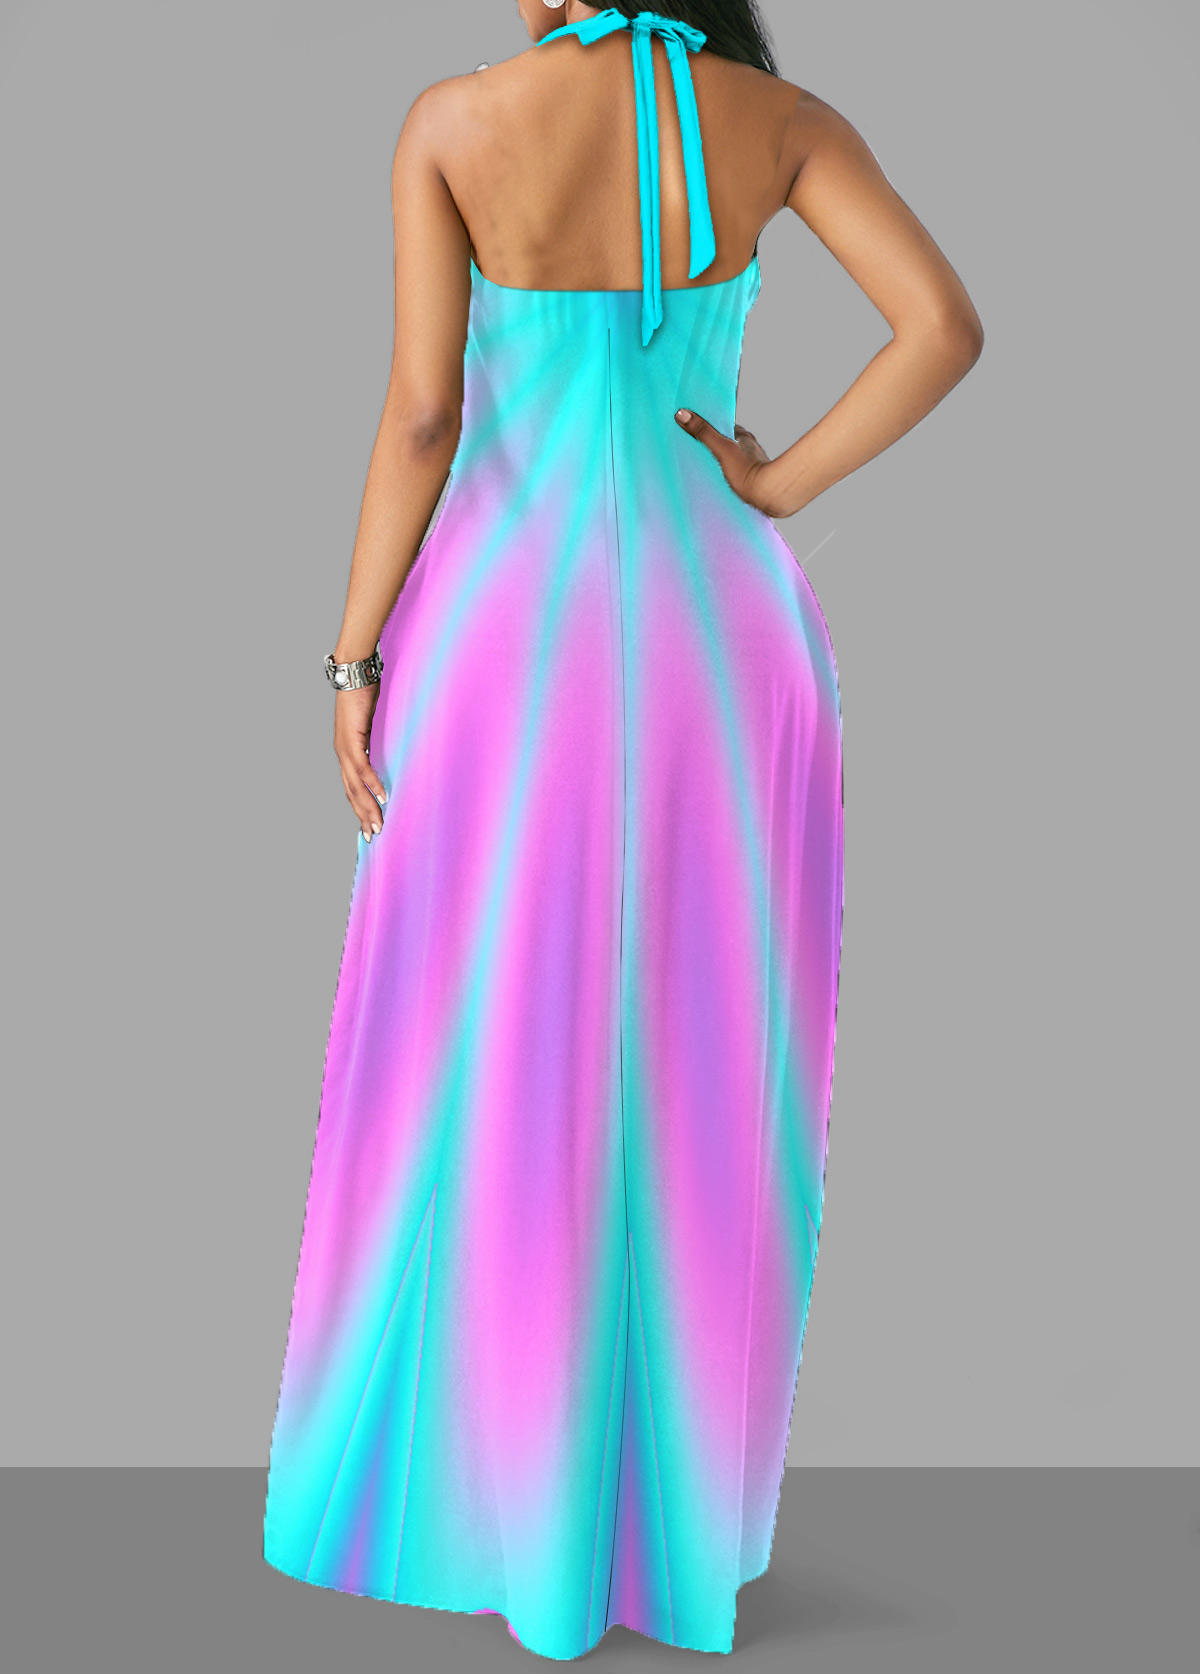 Halter Cross Strap Colorful Maxi Dress